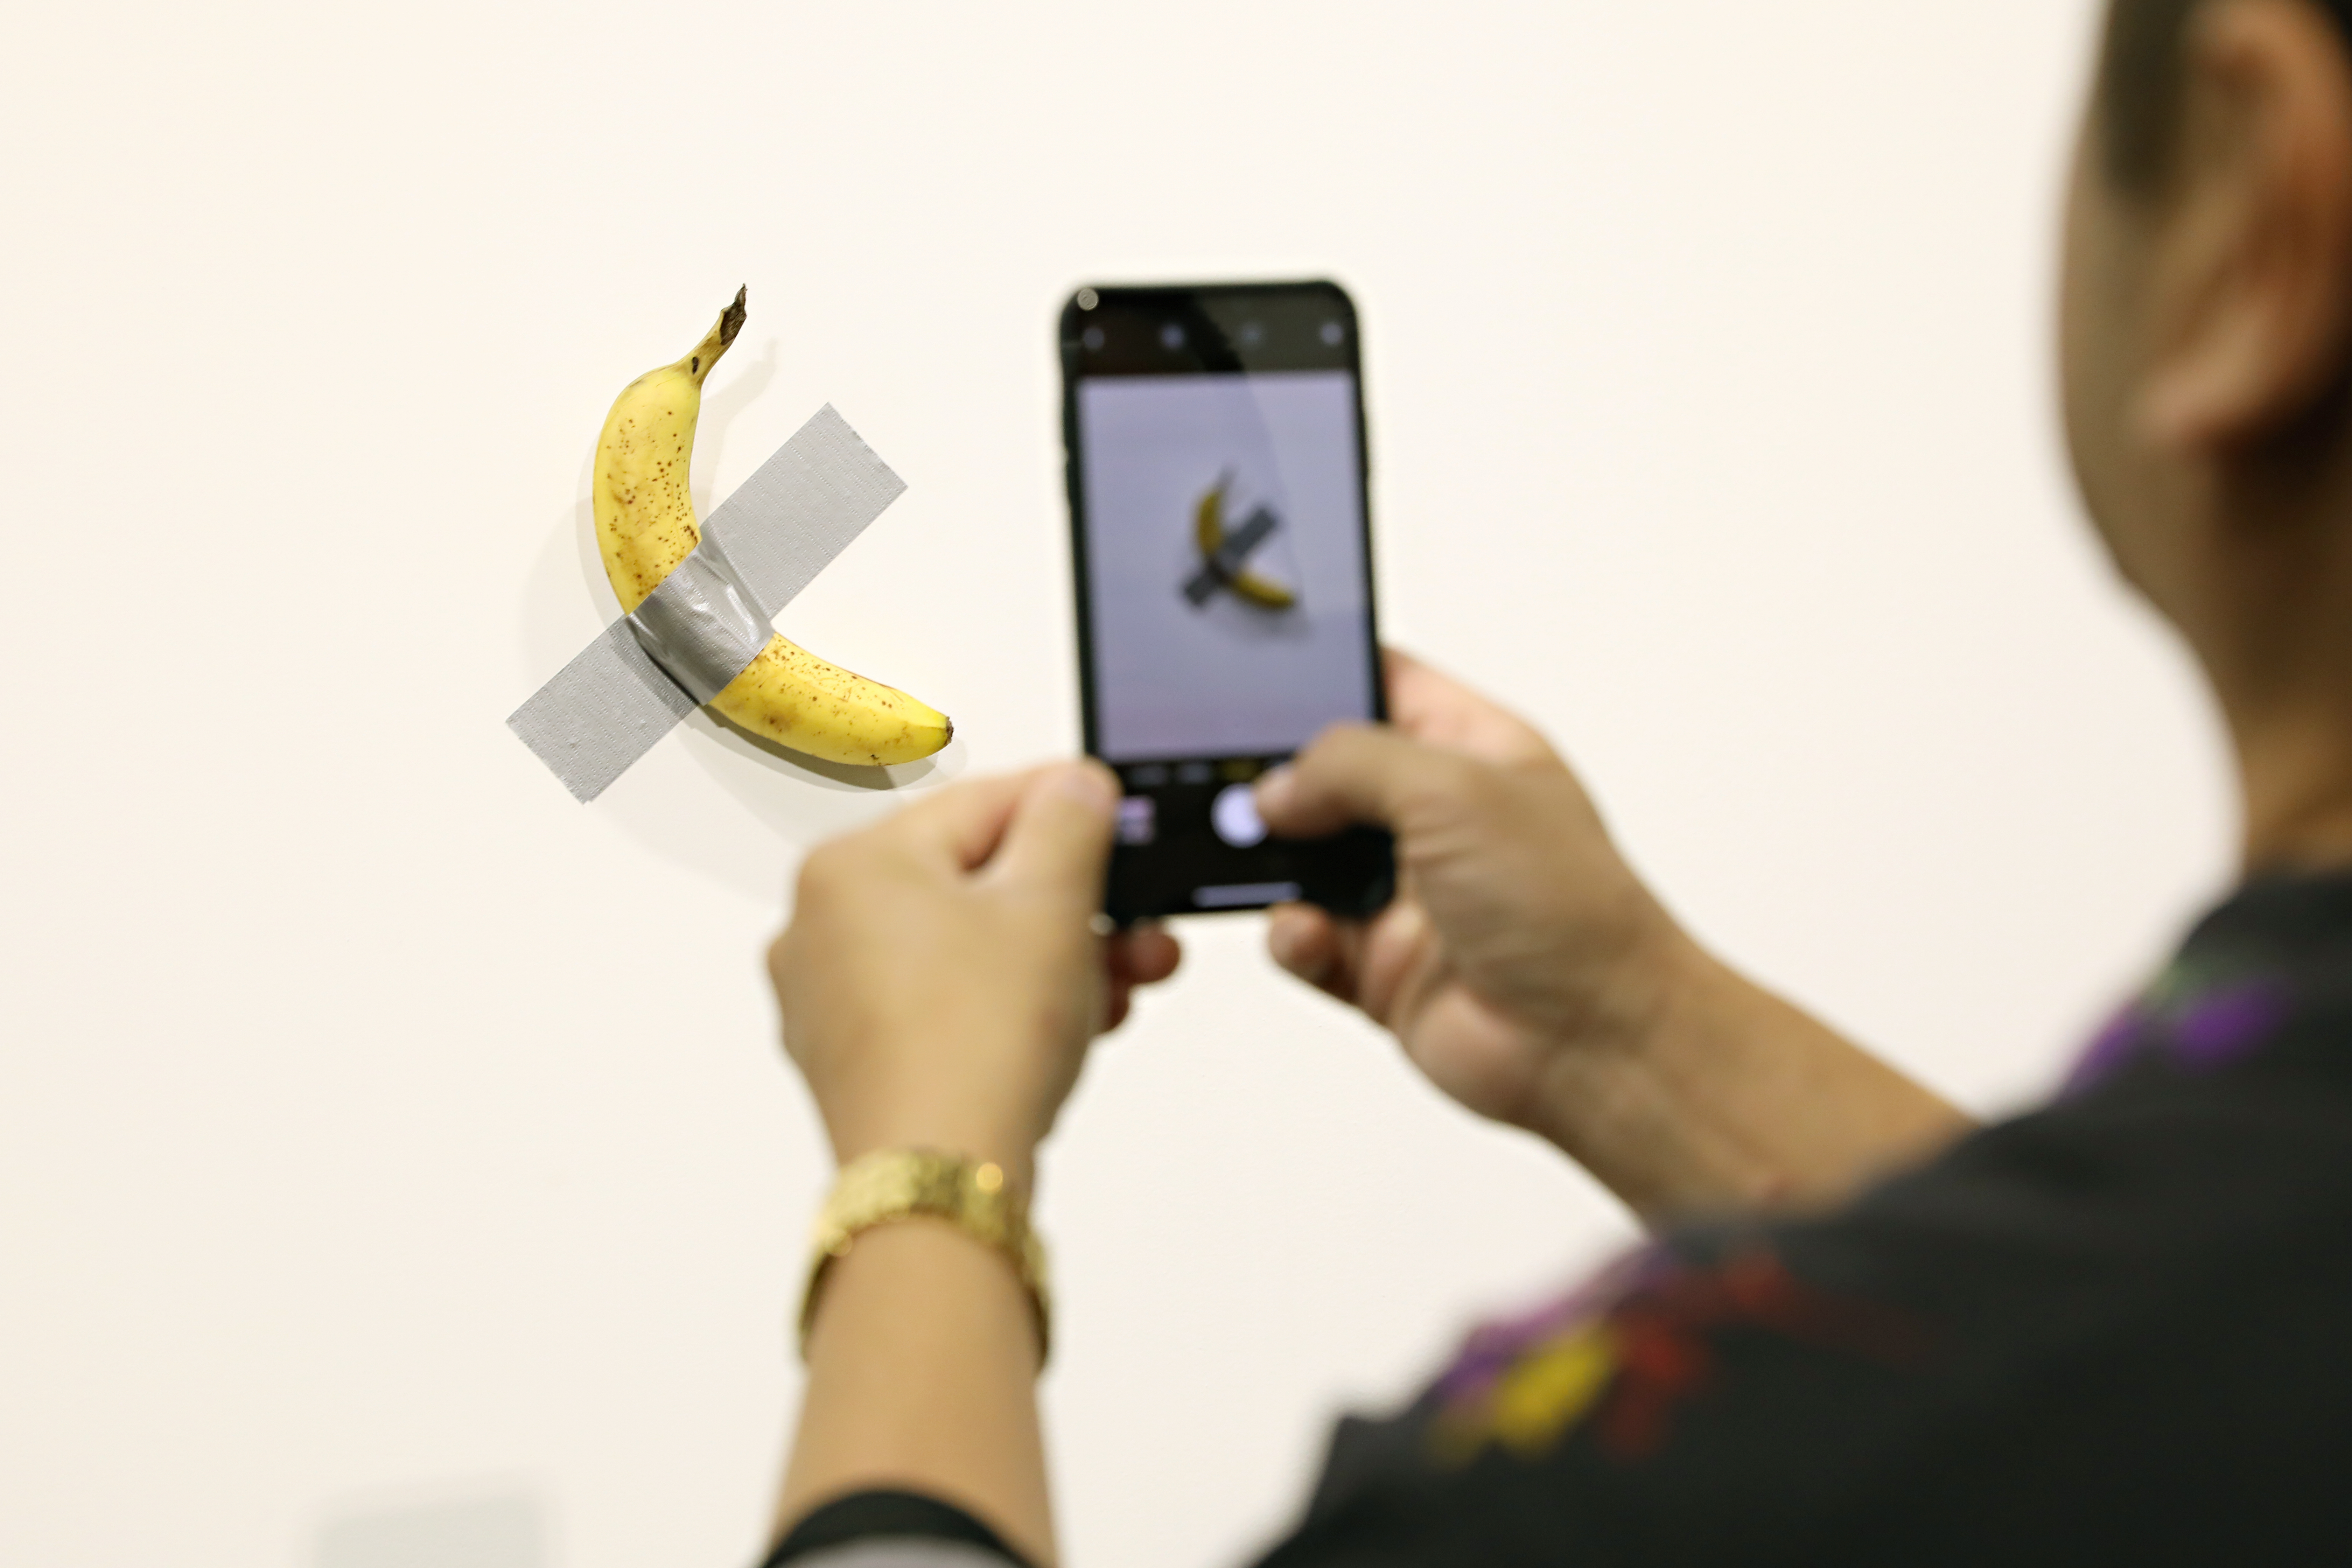 A performance artist ate a banana after it had sold for a total of $120,000 after being on display at the Galerie Perrotin during Art Basel.